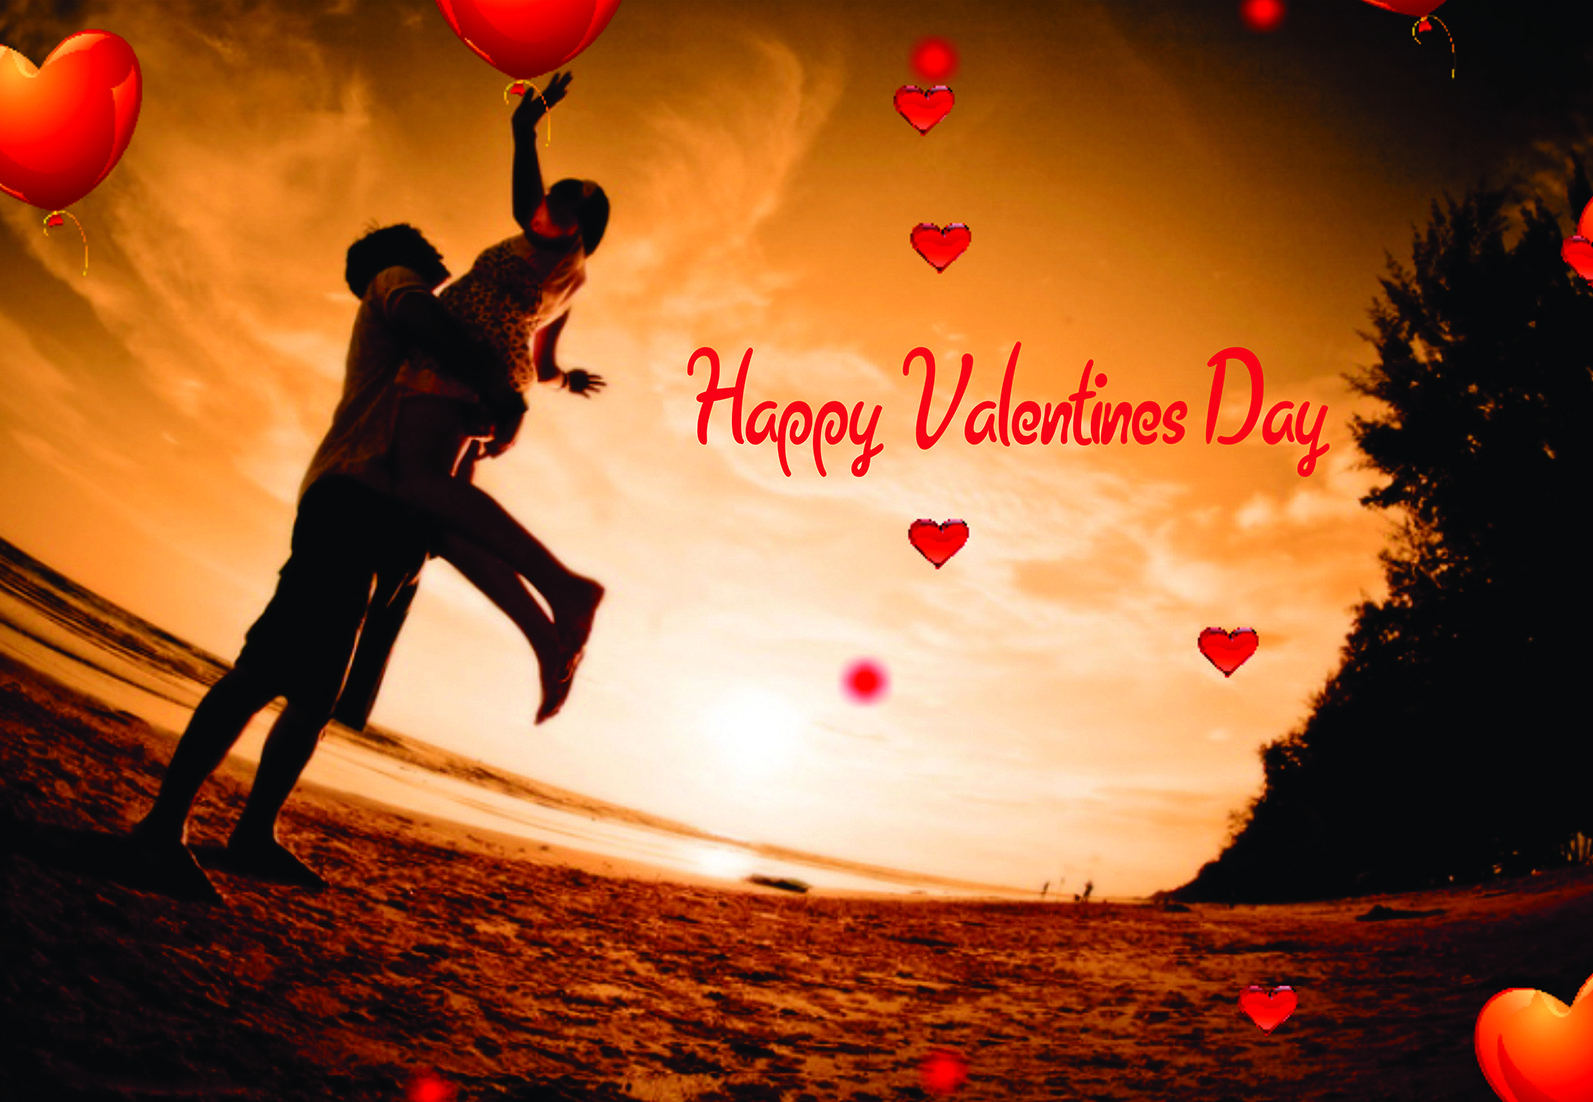 Lover Wallpaper For Mobile : Valentine s Day HD Wallpaper